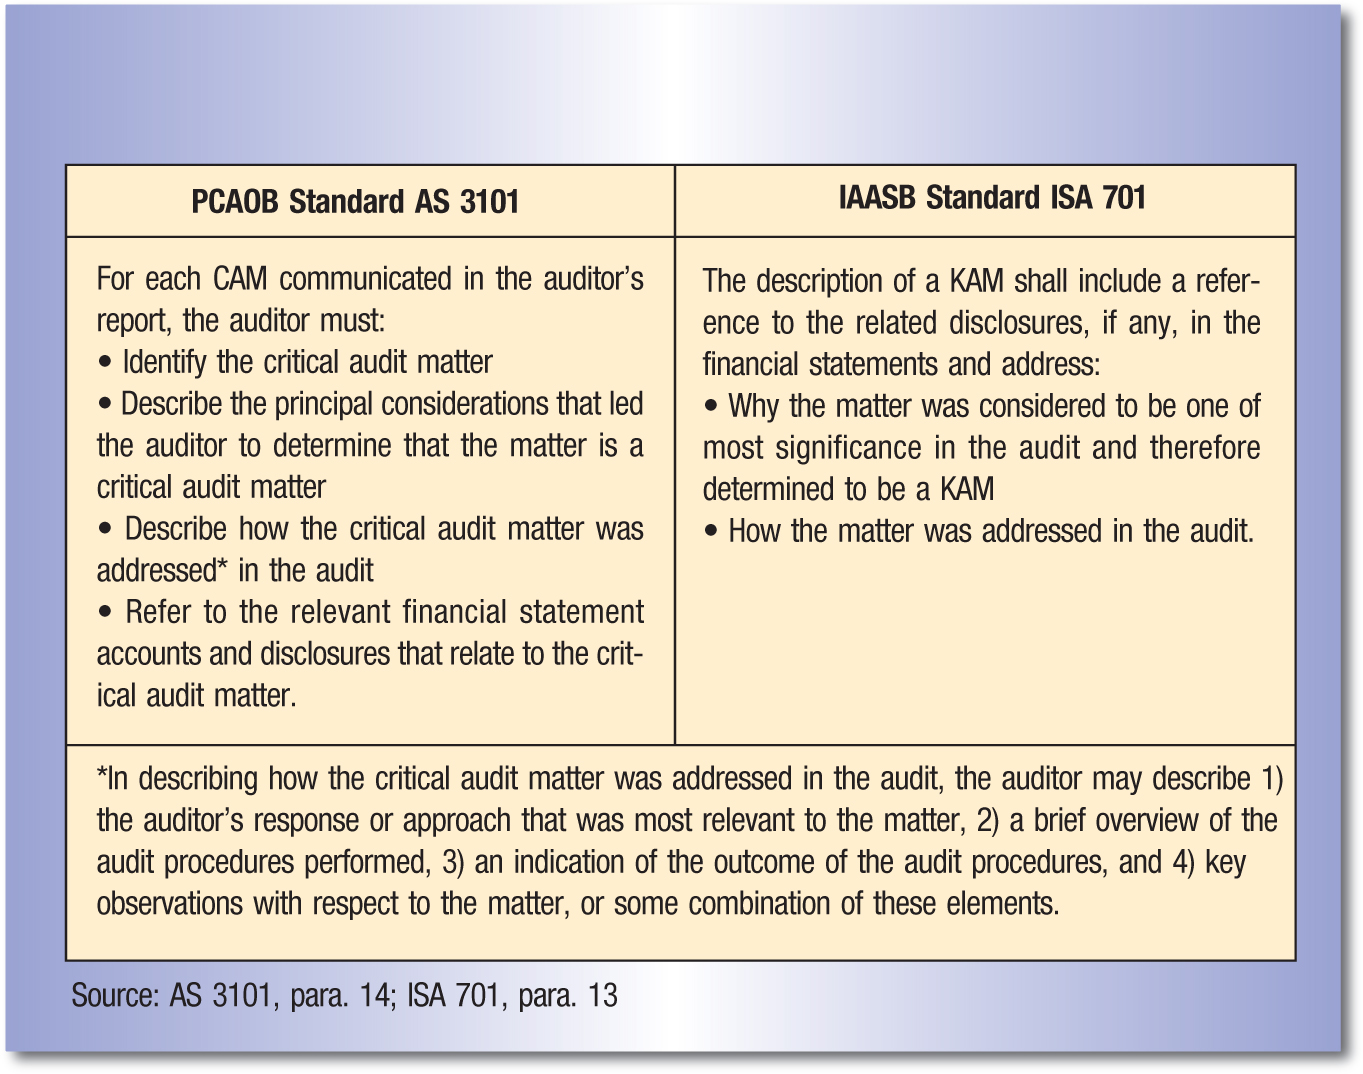 PCAOB Standard AS 3101; IAASB Standard ISA 701 For each CAM communicated in the auditor's report, the auditor must:; • Identify the critical audit matter; • Describe the principal considerations that led the auditor to determine that the matter is a critical audit matter; • Describe how the critical audit matter was addressed* in the audit; • Refer to the relevant financial statement accounts and disclosures that relate to the critical audit matter. The description of a KAM shall include a reference to the related disclosures, if any, in the financial statements and address:; • Why the matter was considered to be one of most significance in the audit and therefore determined to be a KAM; • How the matter was addressed in the audit. *In describing how the critical audit matter was addressed in the audit, the auditor may describe 1) the auditor's response or approach that was most relevant to the matter, 2) a brief overview of the audit procedures performed, 3) an indication of the outcome of the audit procedures, and 4) key observations with respect to the matter, or some combination of these elements.